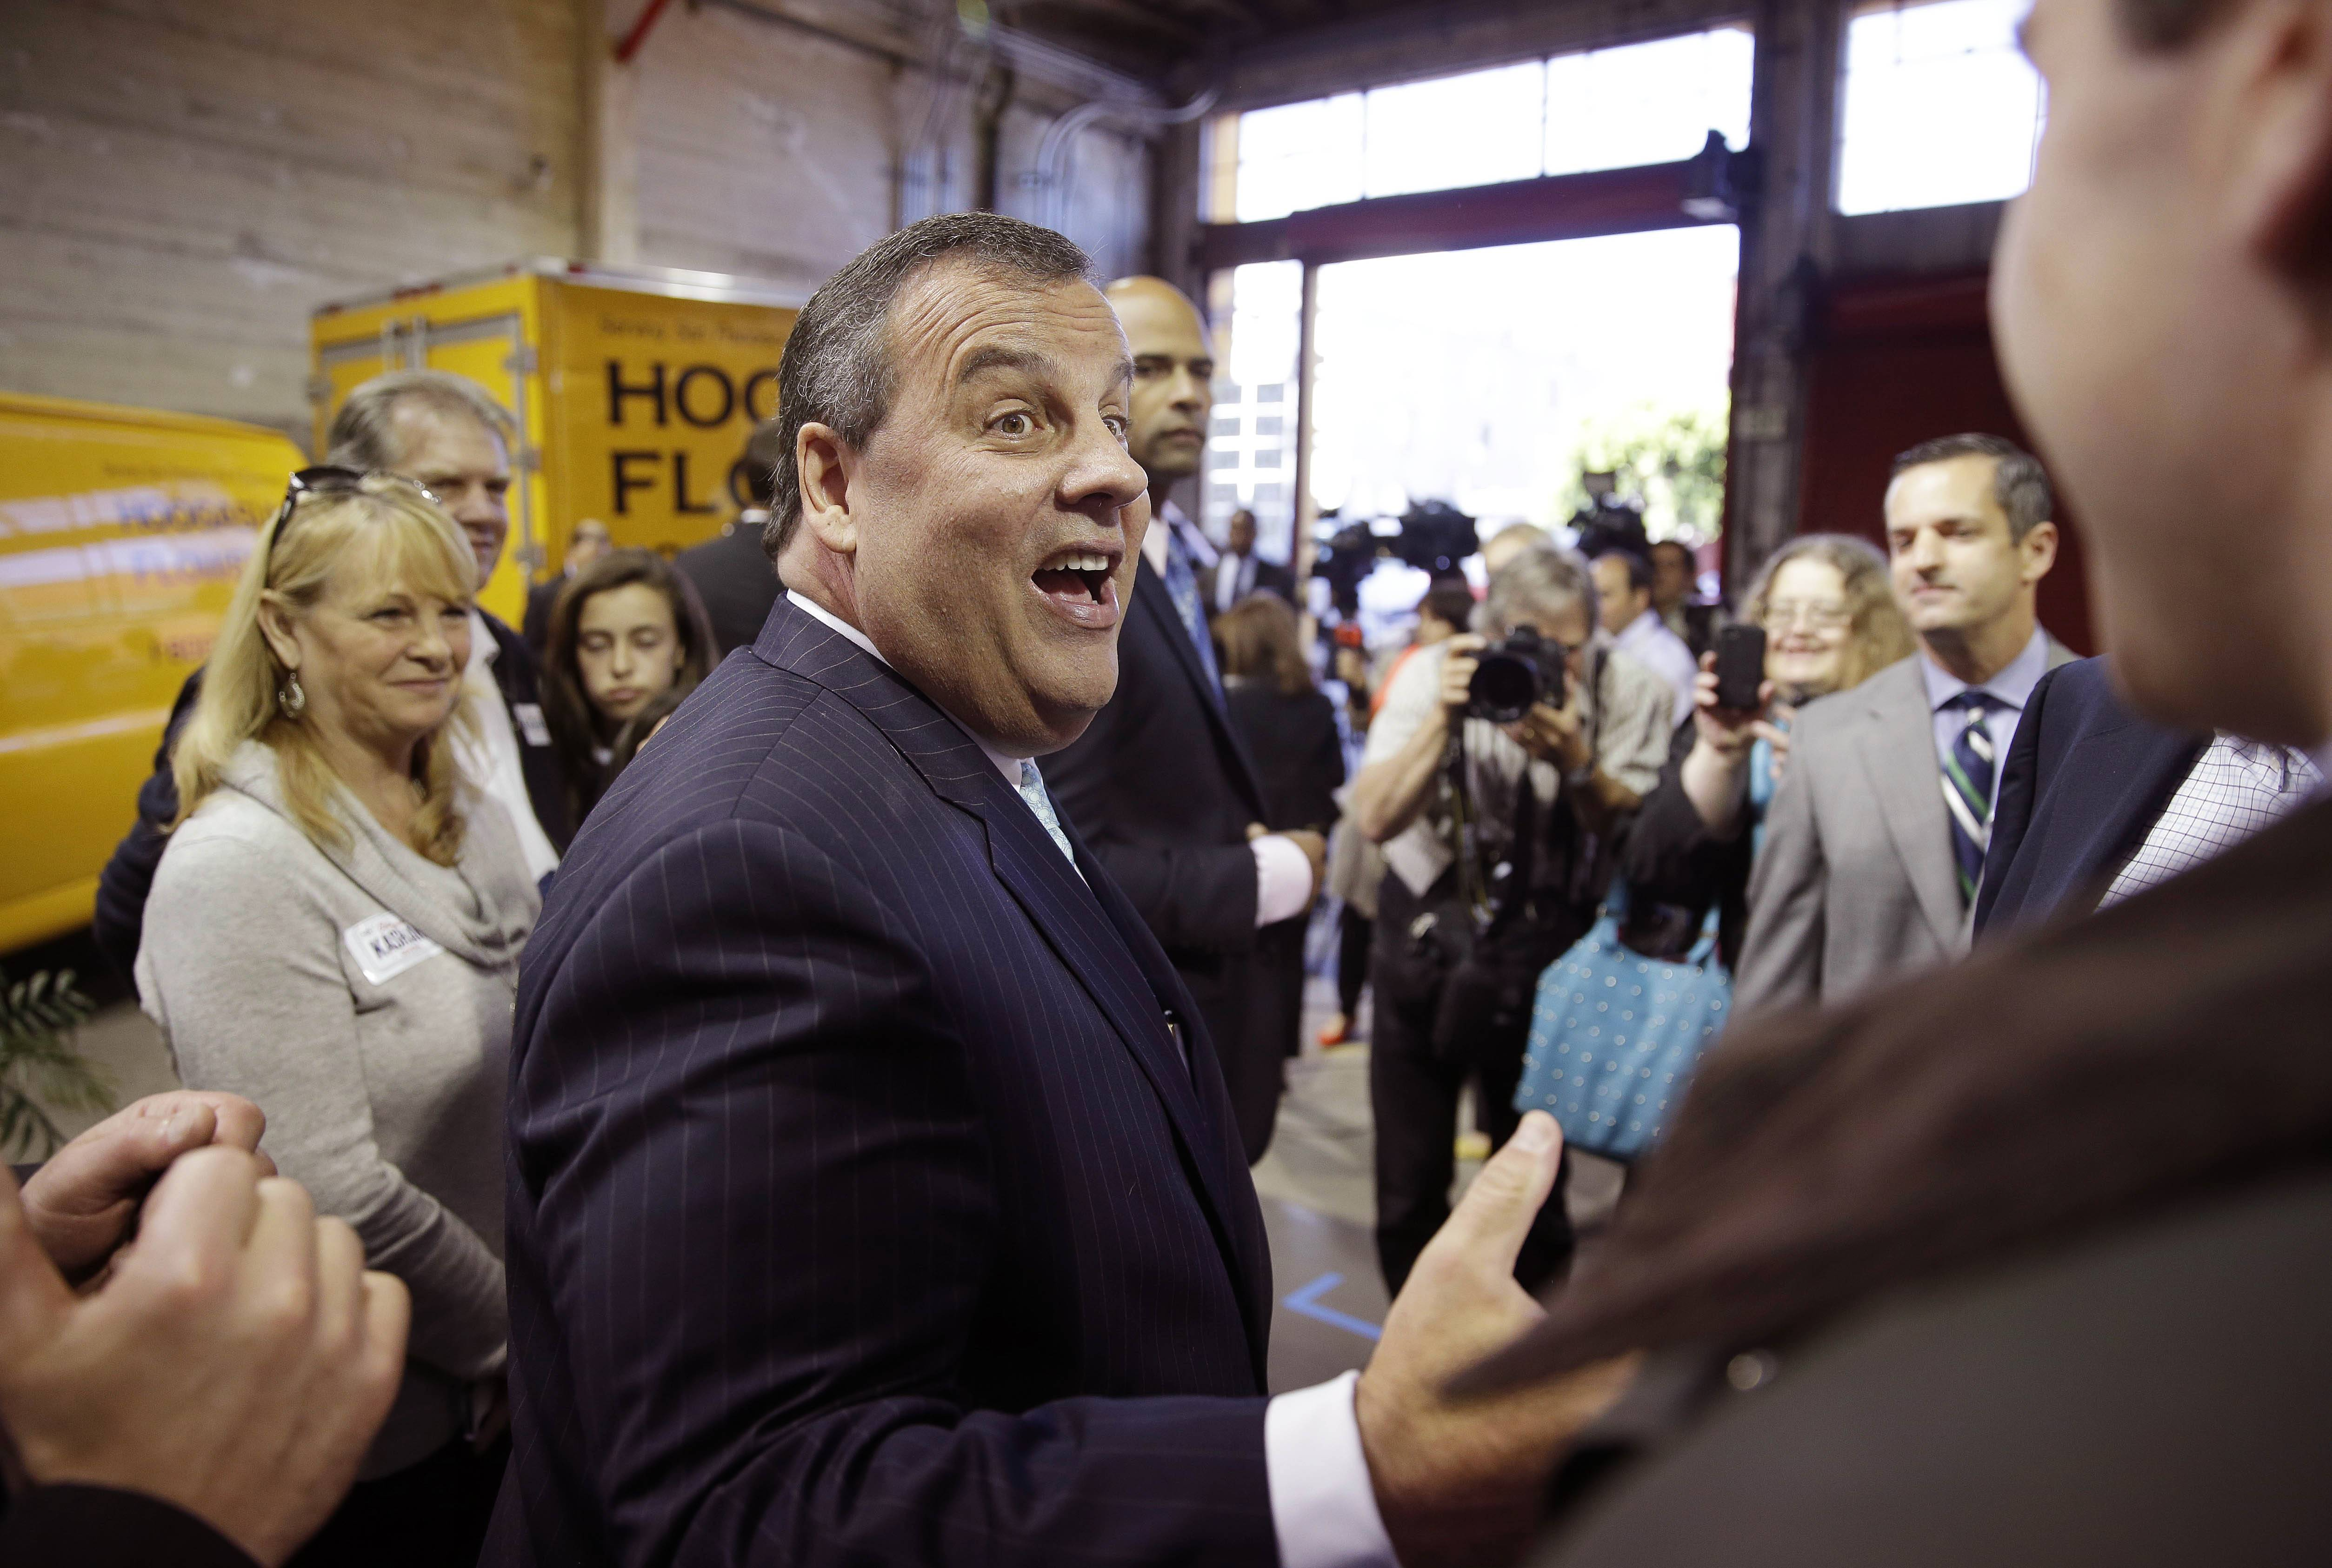 New Jersey Gov. Chris Christie shakes hands with supporters Friday during a visit to Hoogasian Flowers in San Francisco.